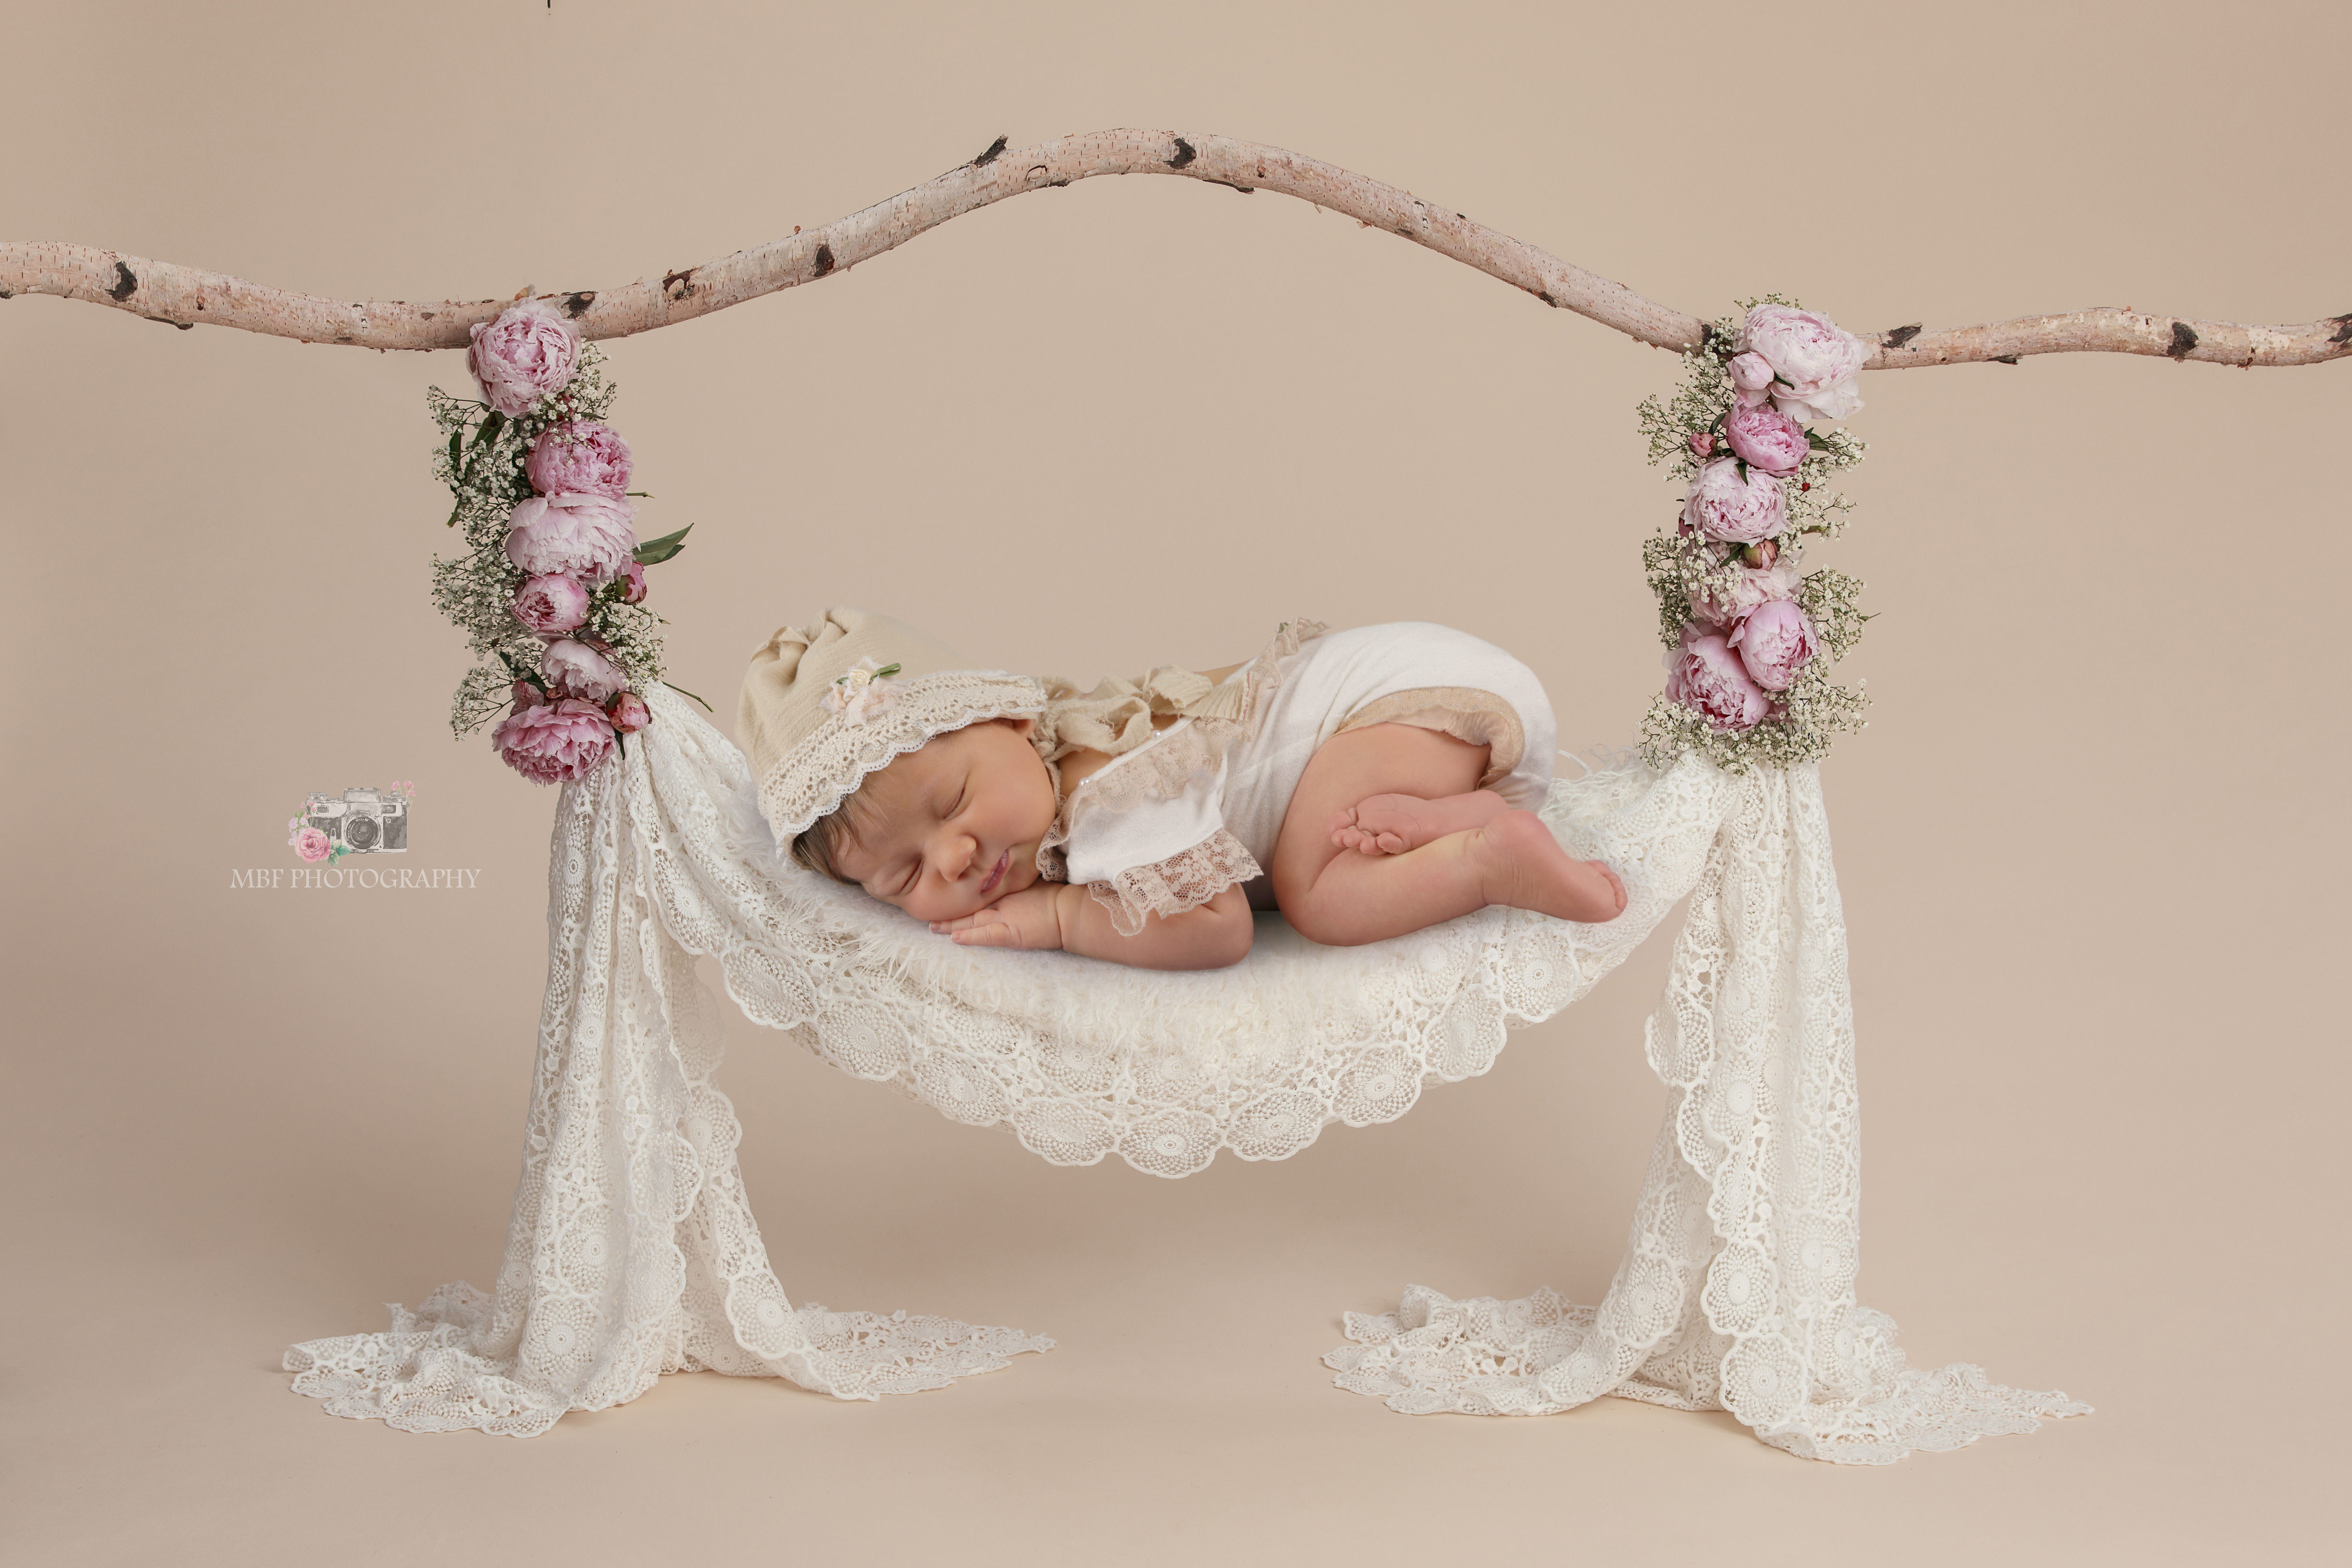 Best newborn photographer Las Vegas, new